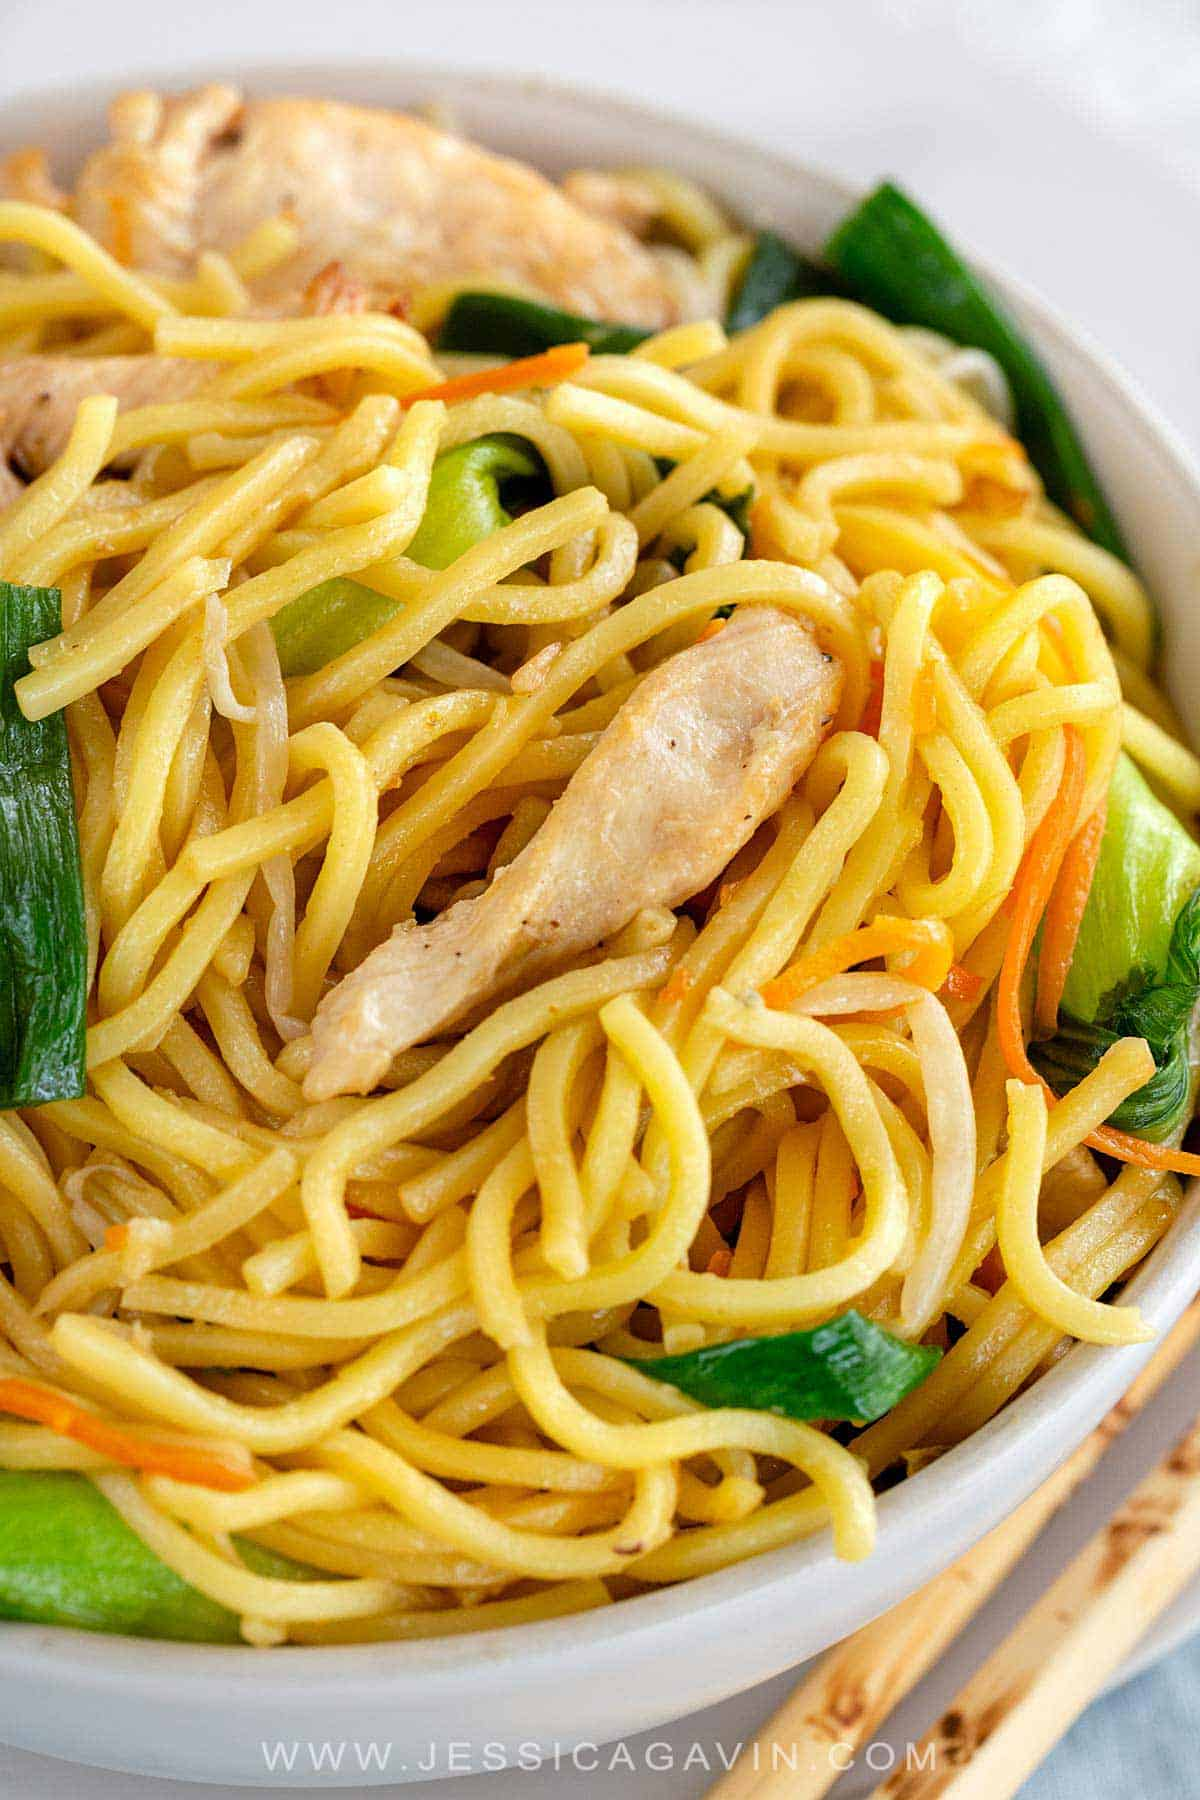 Chicken lo mein stir fry recipe loaded with lean protein, bok choy, bean sprouts, and carrots. A flavorful Chinese meal with chewy egg noodles. #lomein #stirfry #chinese #chicken #noodles